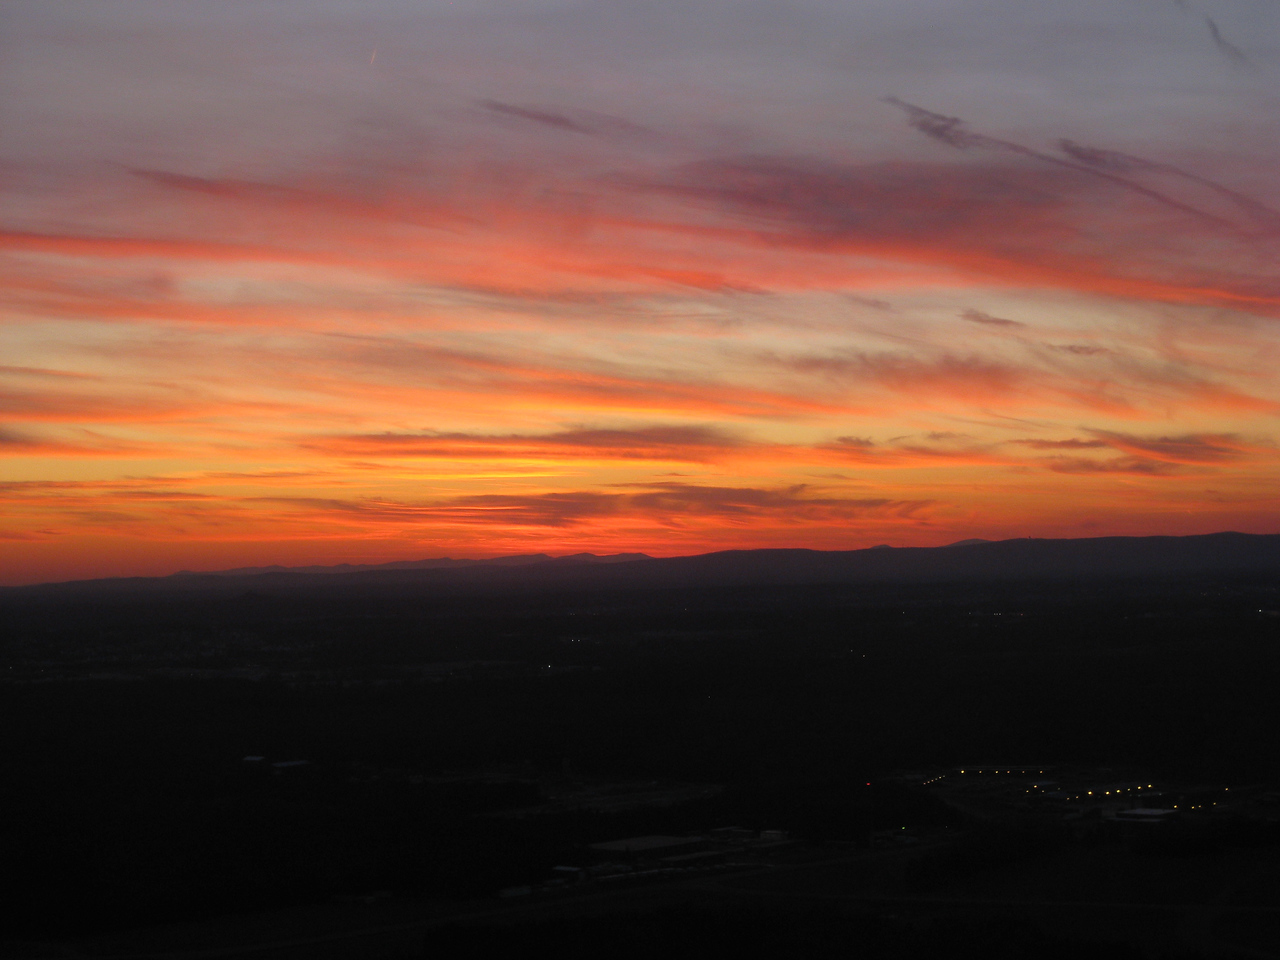 sunset colors while flying south Dullus to Greensboro